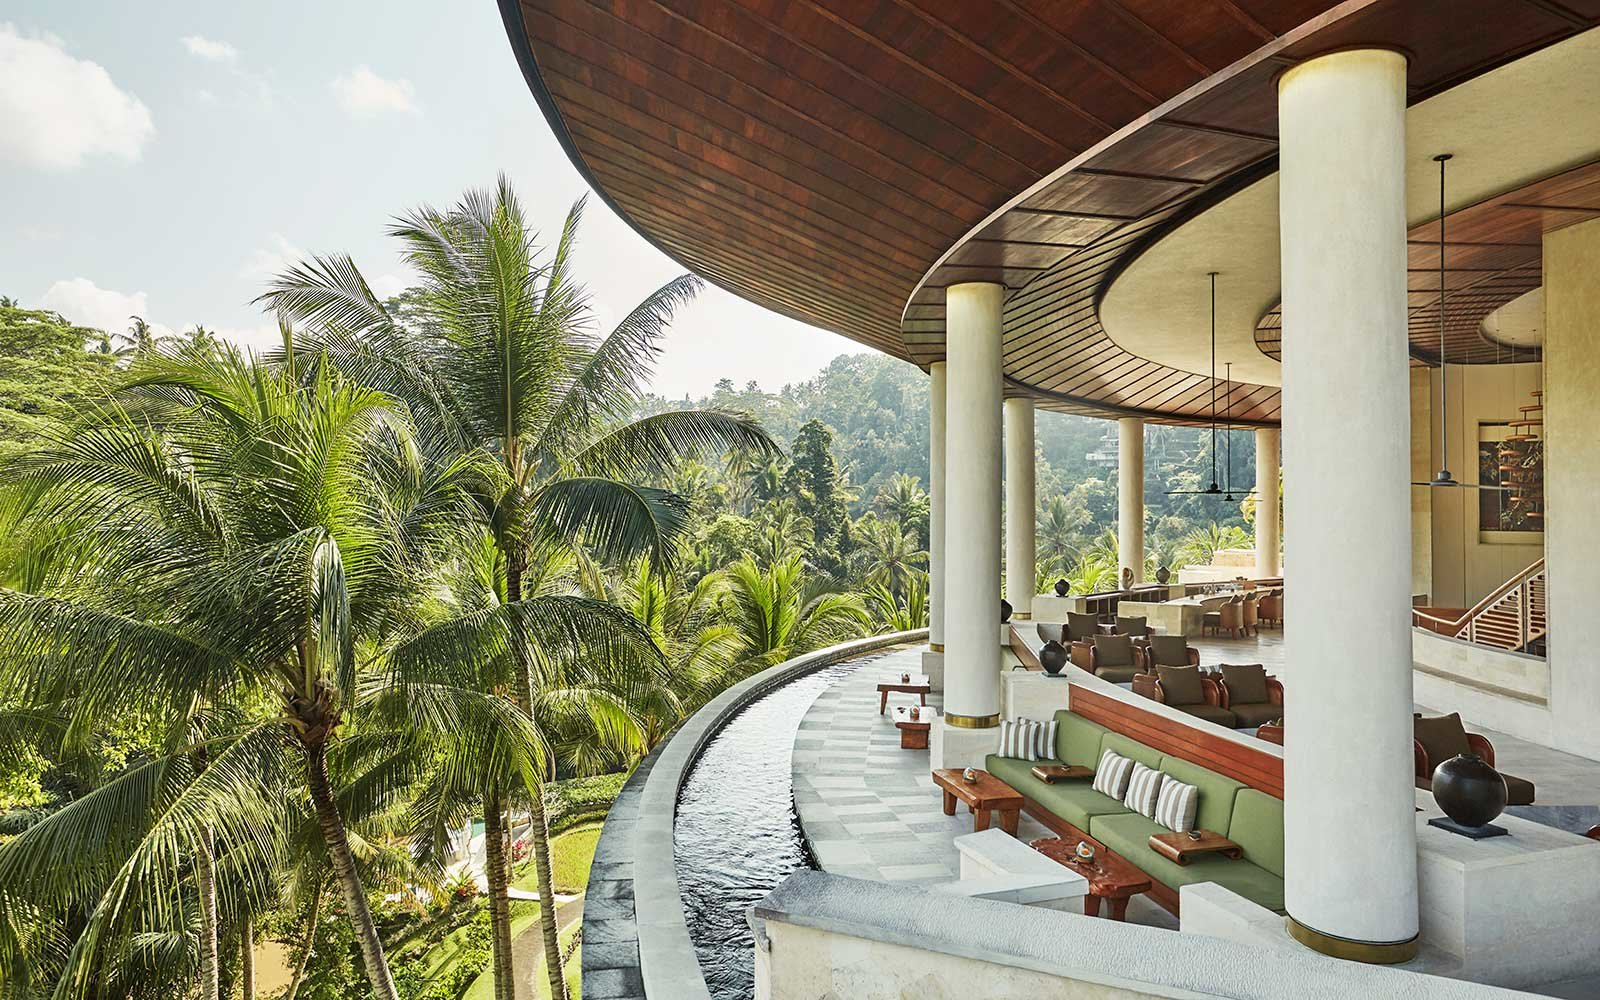 the 2017 world's best resort hotels in asia | travel + leisure